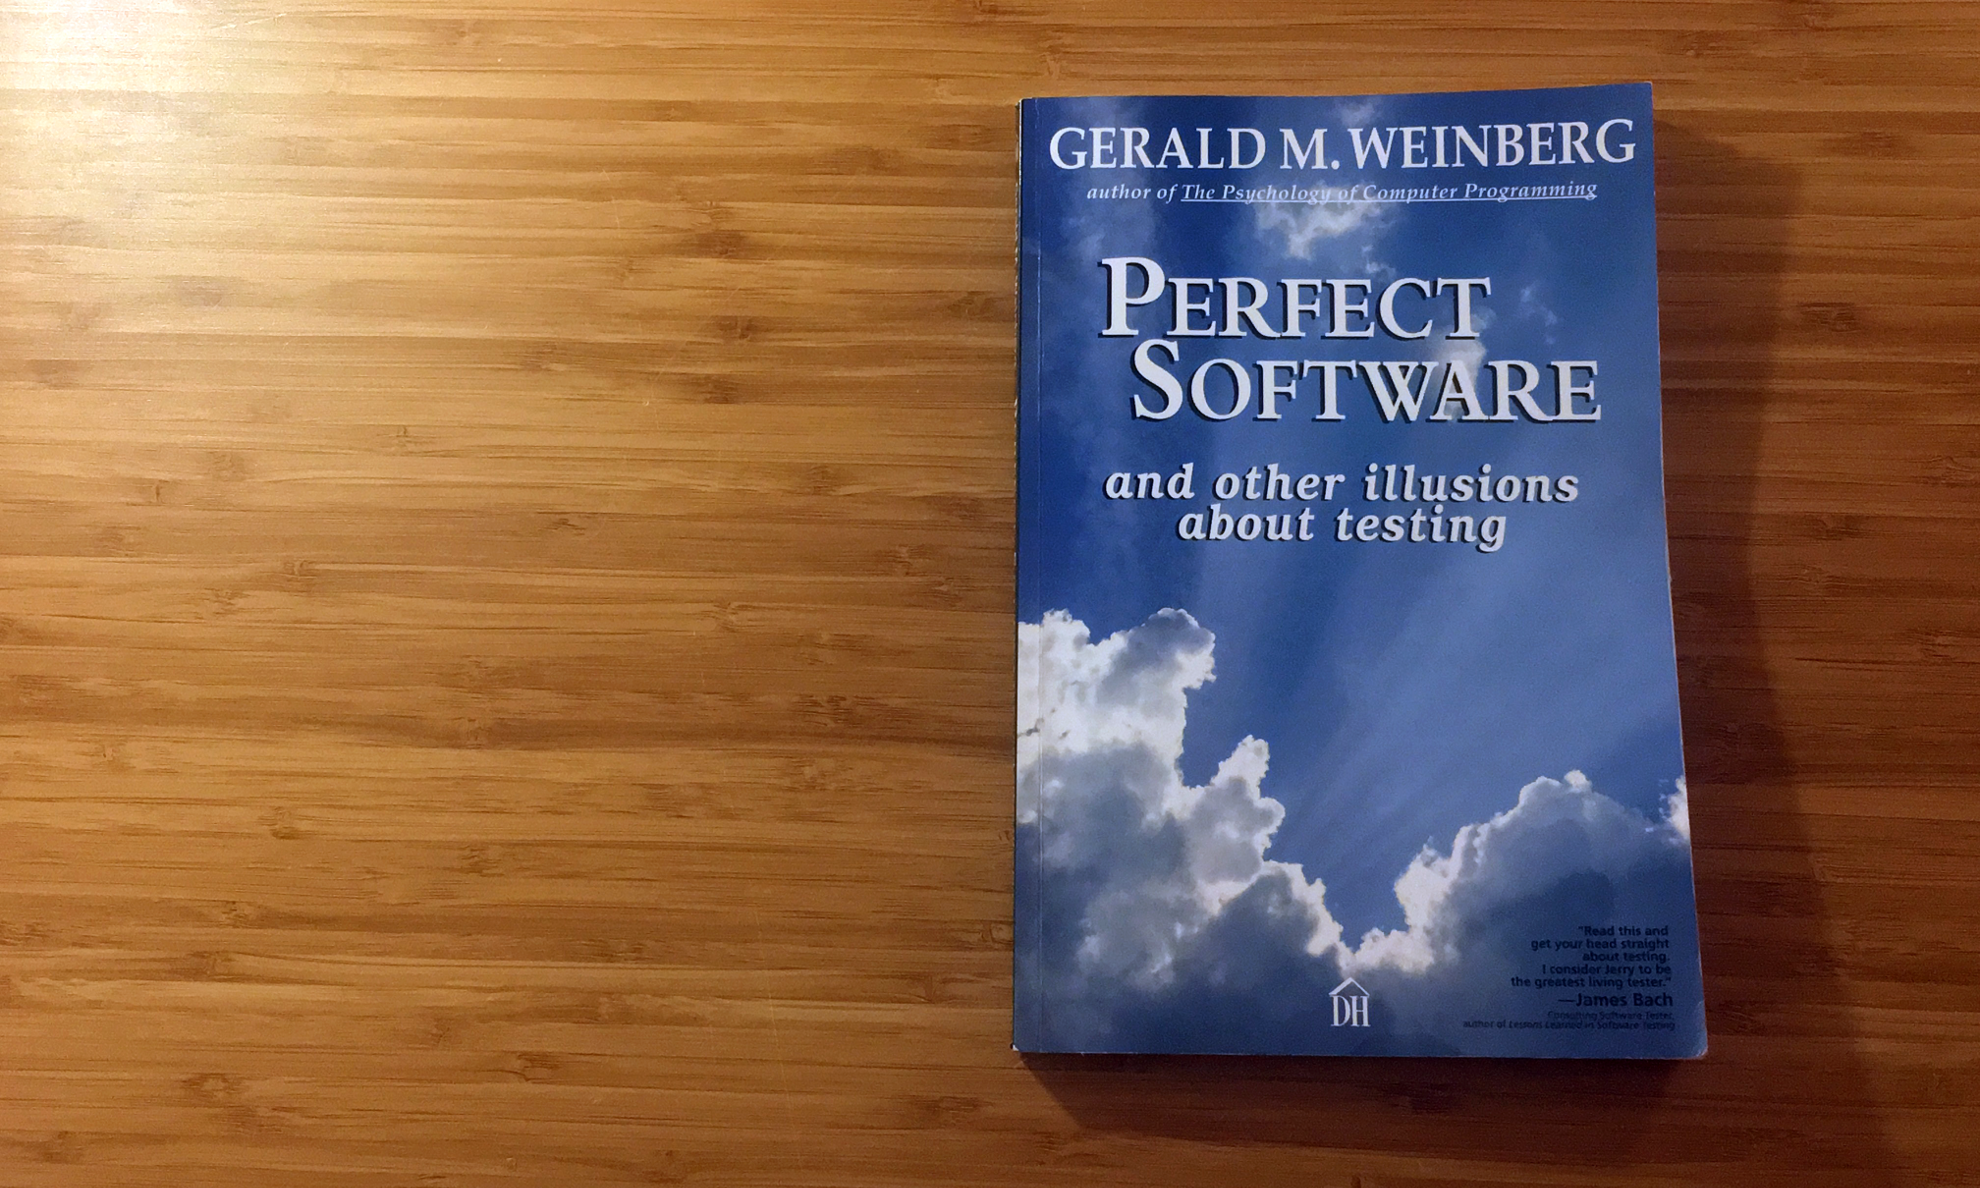 Prefect Software and other Illusions about testing written by Gerald M. Weinberg